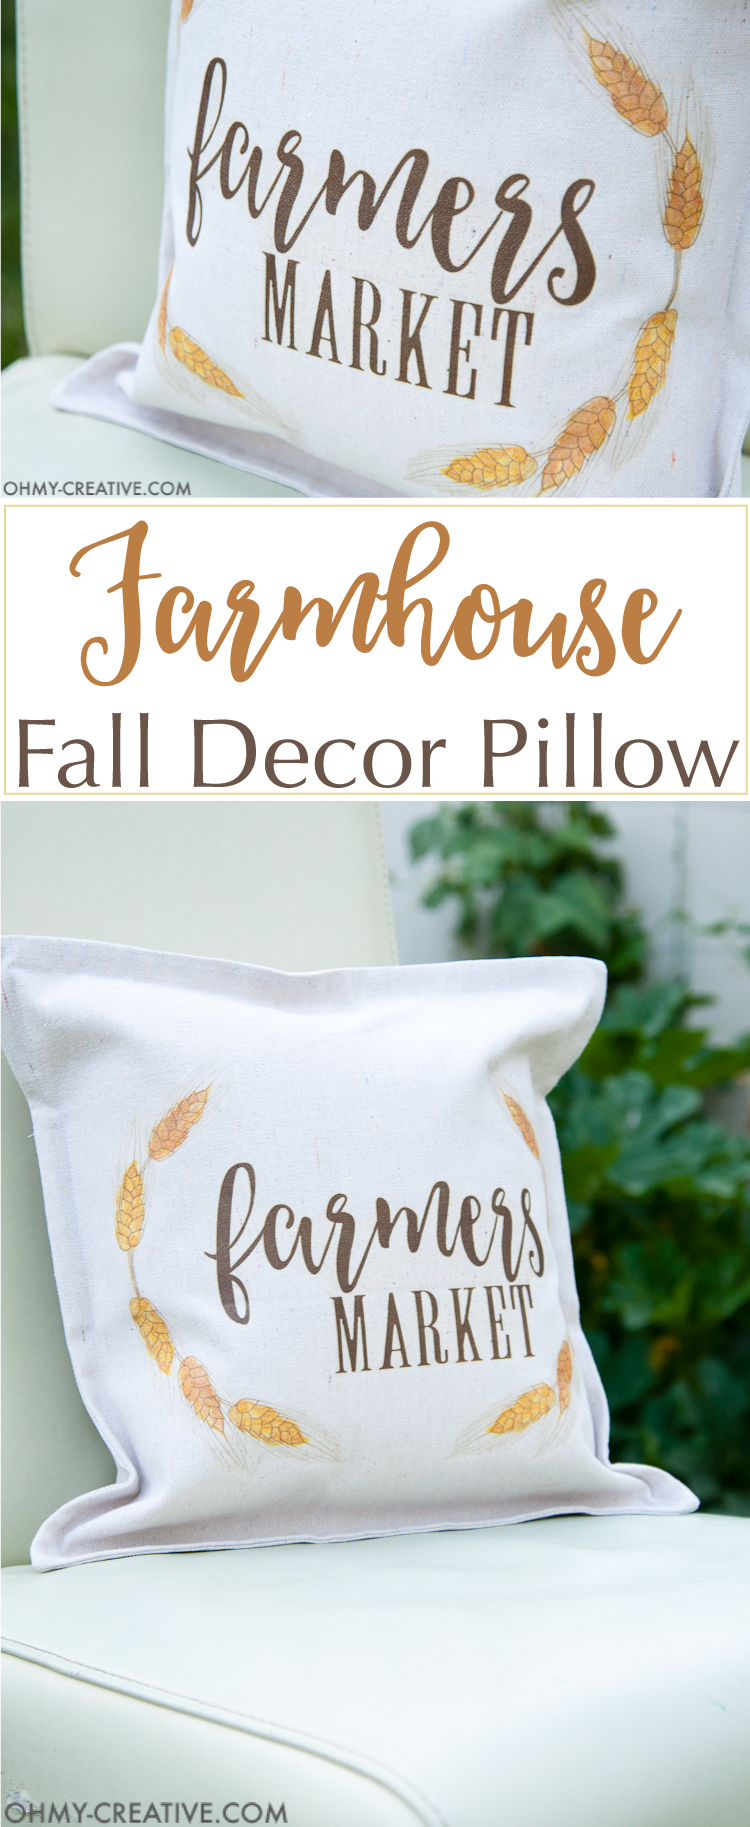 It's time to decorate your home for fall! Make this easy DIY farmhouse fall decor pillow in just a few minutes to celebrate the cooler weather. | OHMY-CREATIVE.COM